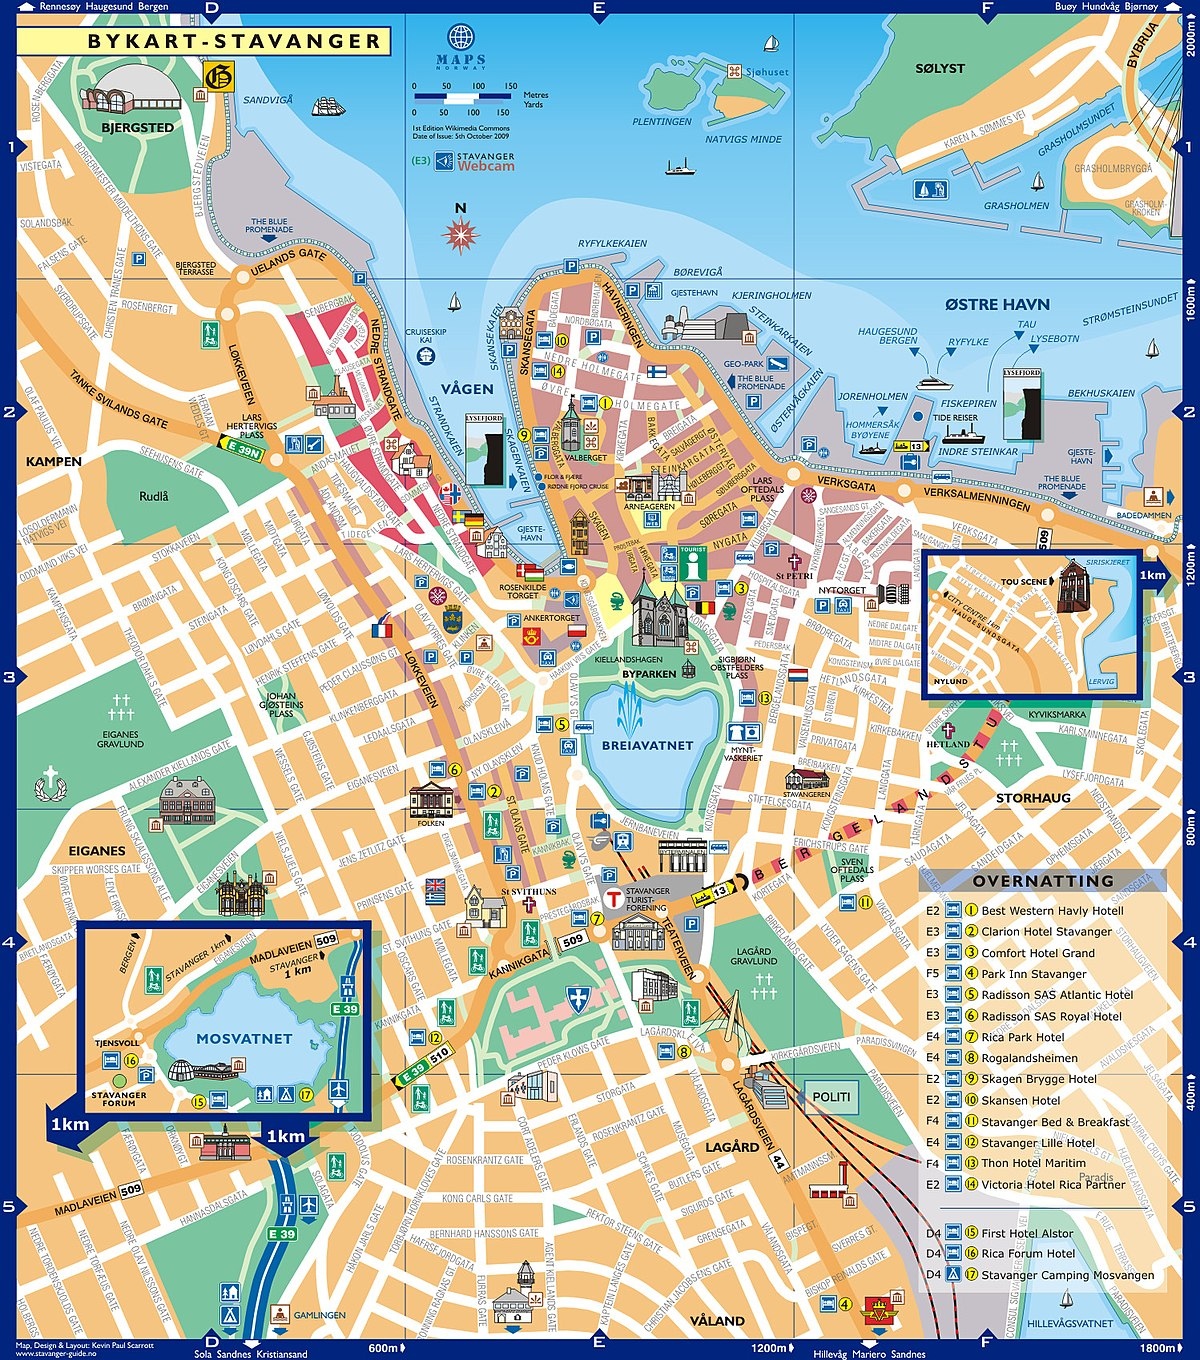 City map - Wikipedia